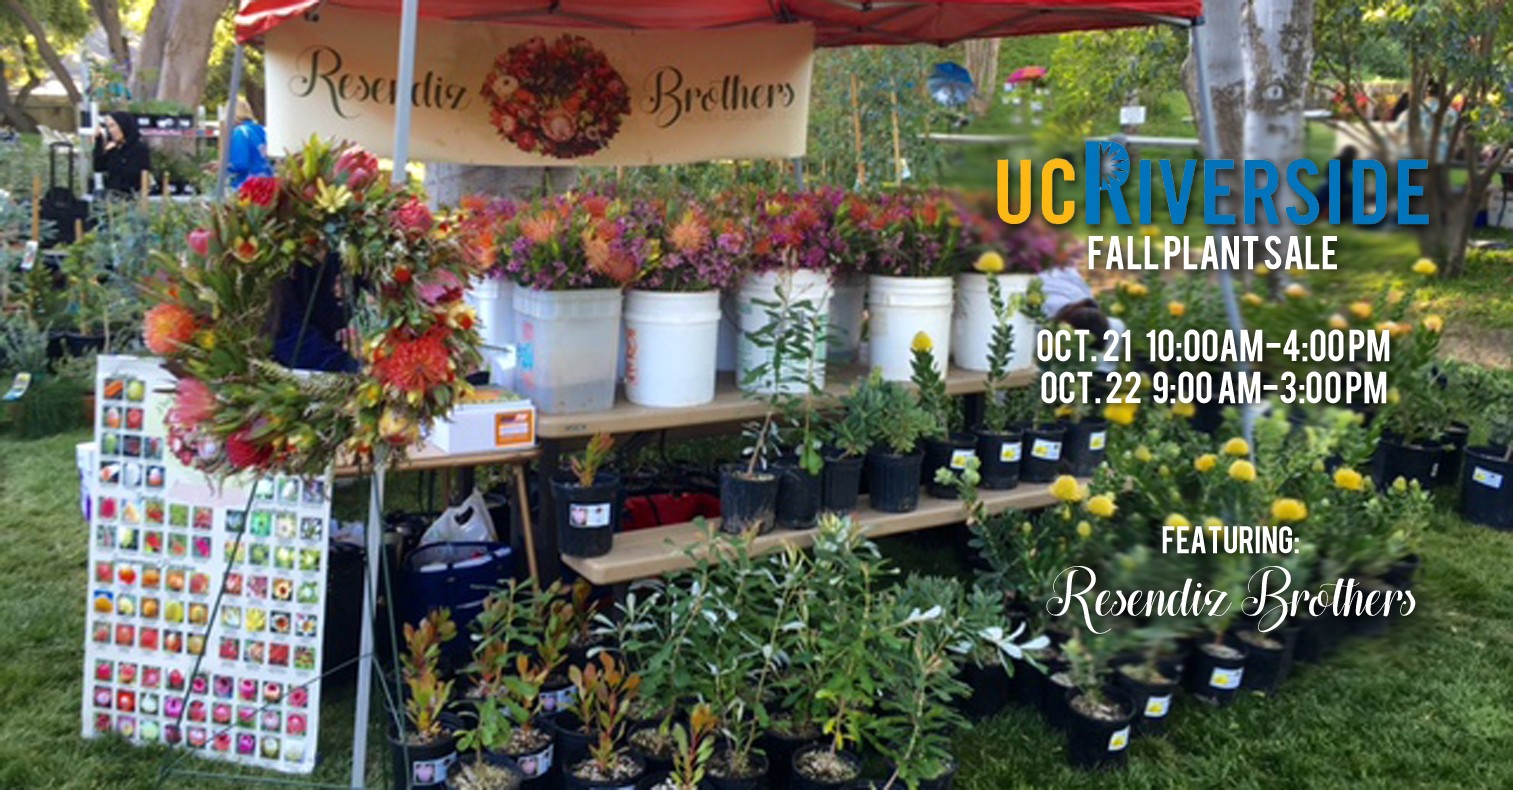 University of California, Riverside – Fall Plant Sale